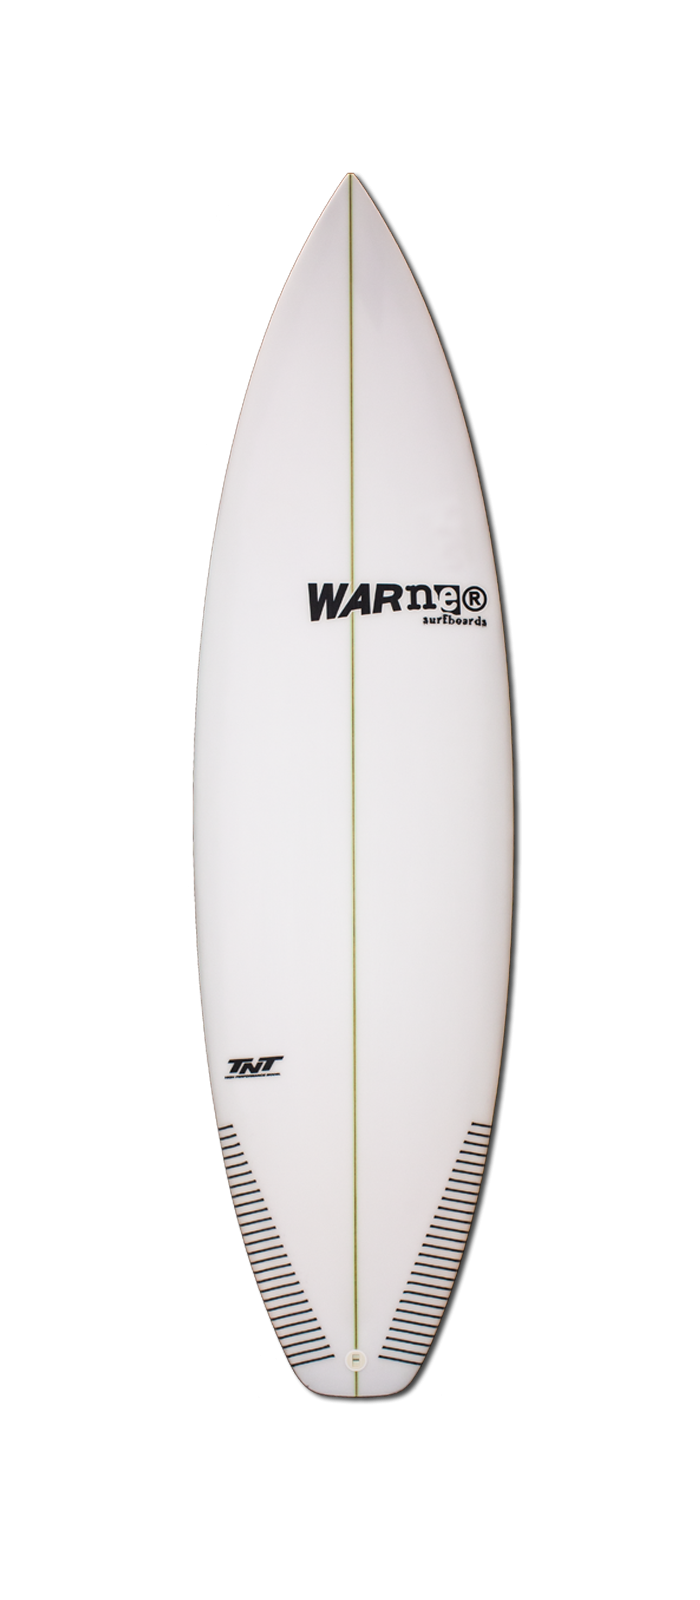 TNT surfboard model